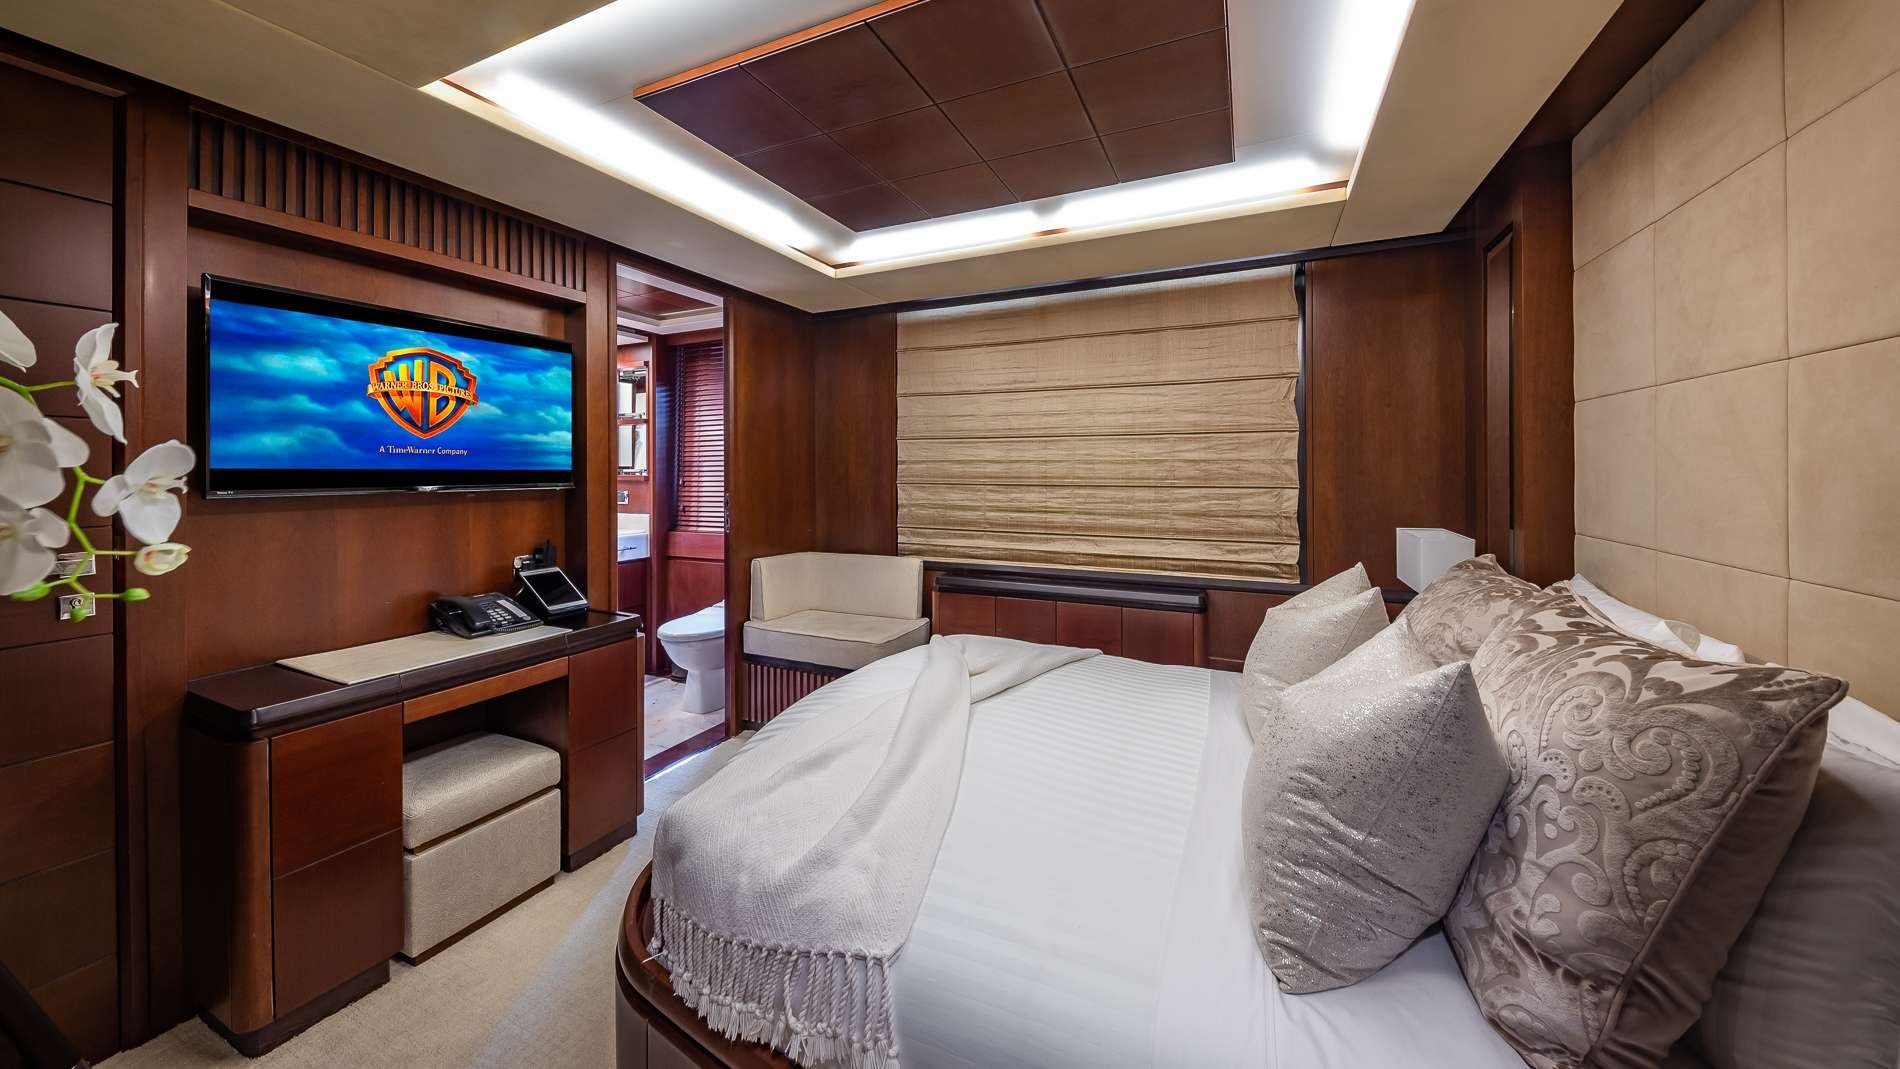 Motor Yacht 'TAIL LIGHTS' Queen Stateroom, 12 PAX, 6 Crew, 116.00 Ft, 35.00 Meters, Built 2011, Azimut, Refit Year 2016